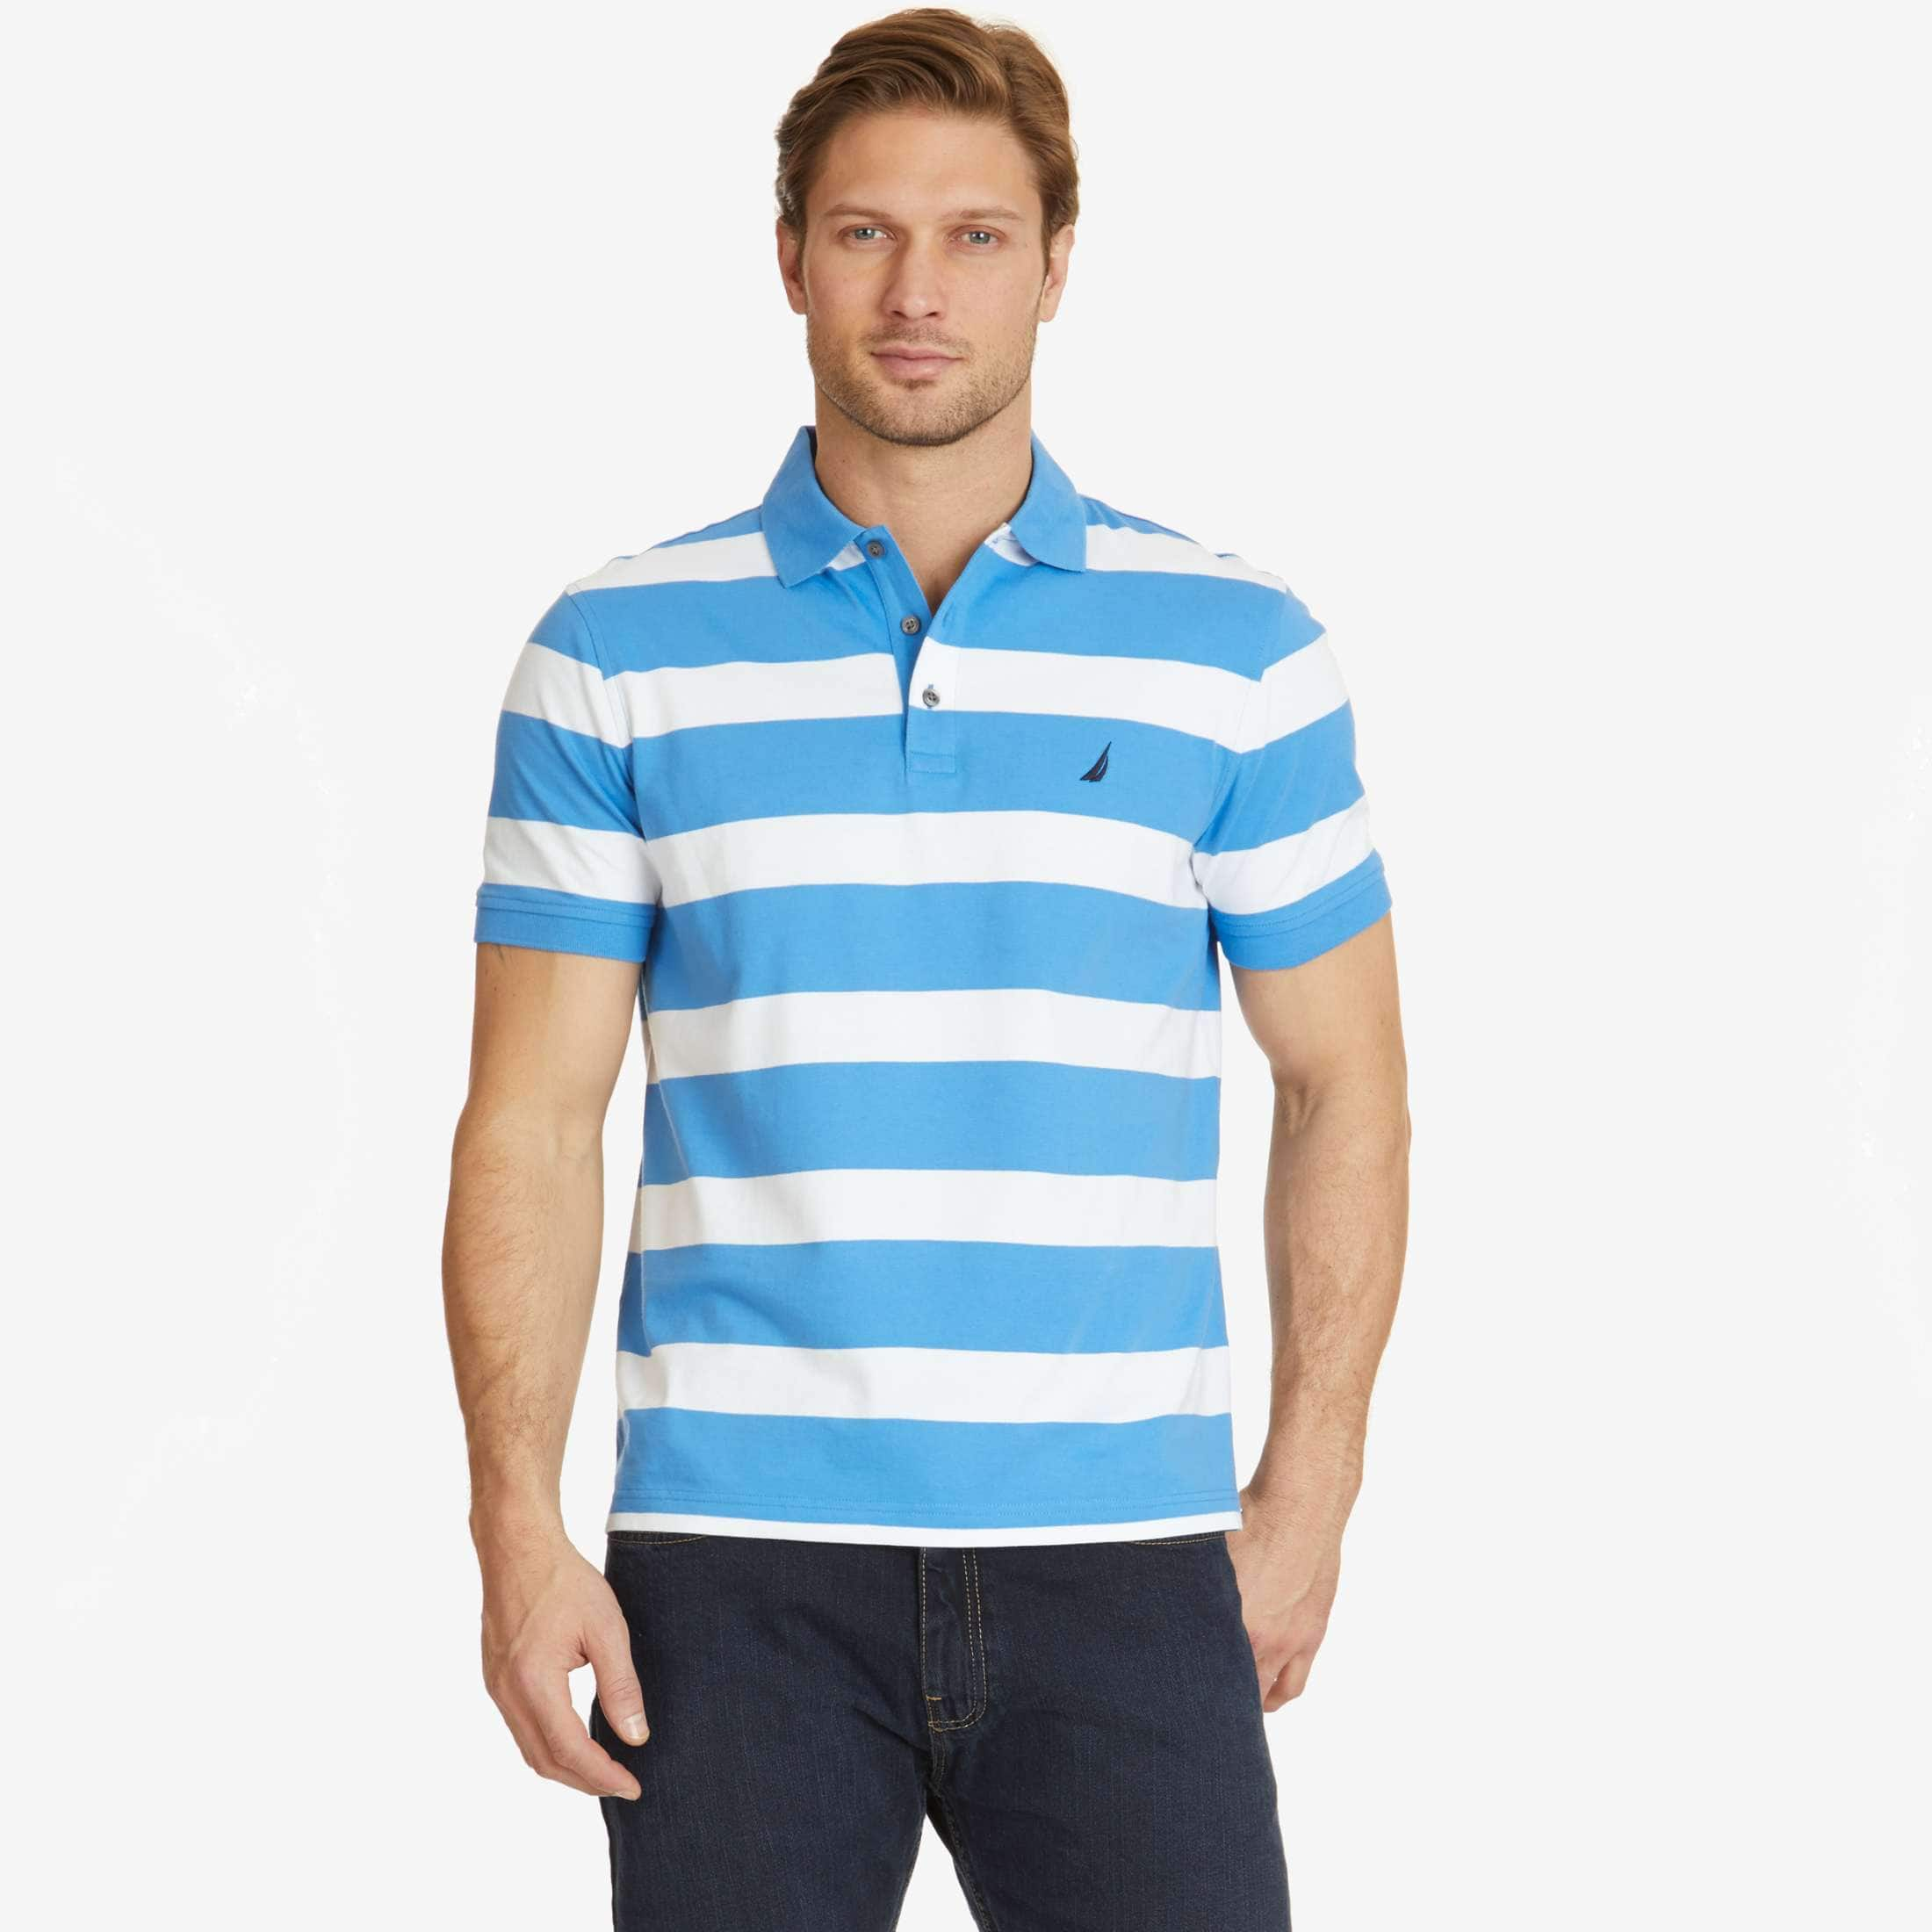 Nautica: Men's Classic Fit Striped Polos - $20.99 Plus Free Shipping